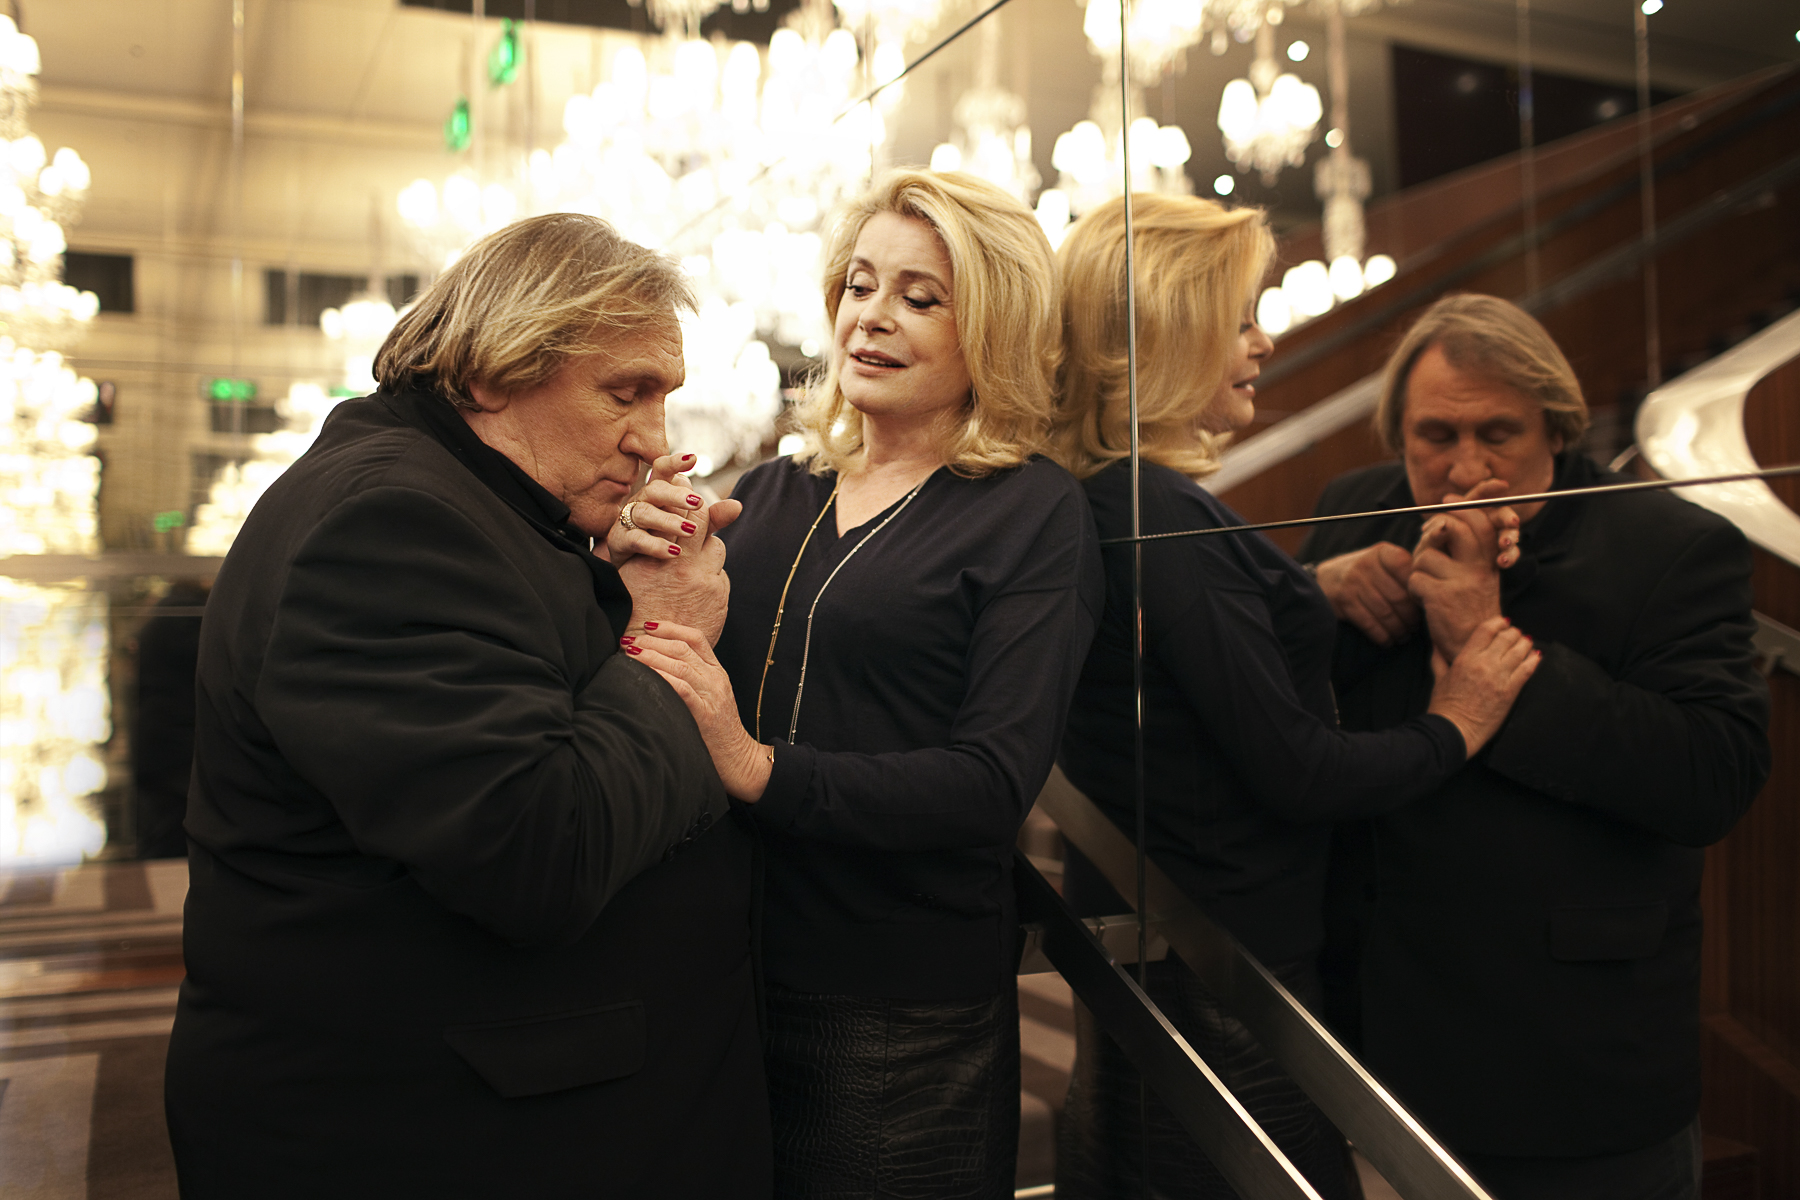 Paris octobre 2010. Catherine Deneuve et Gérard Depardieu.